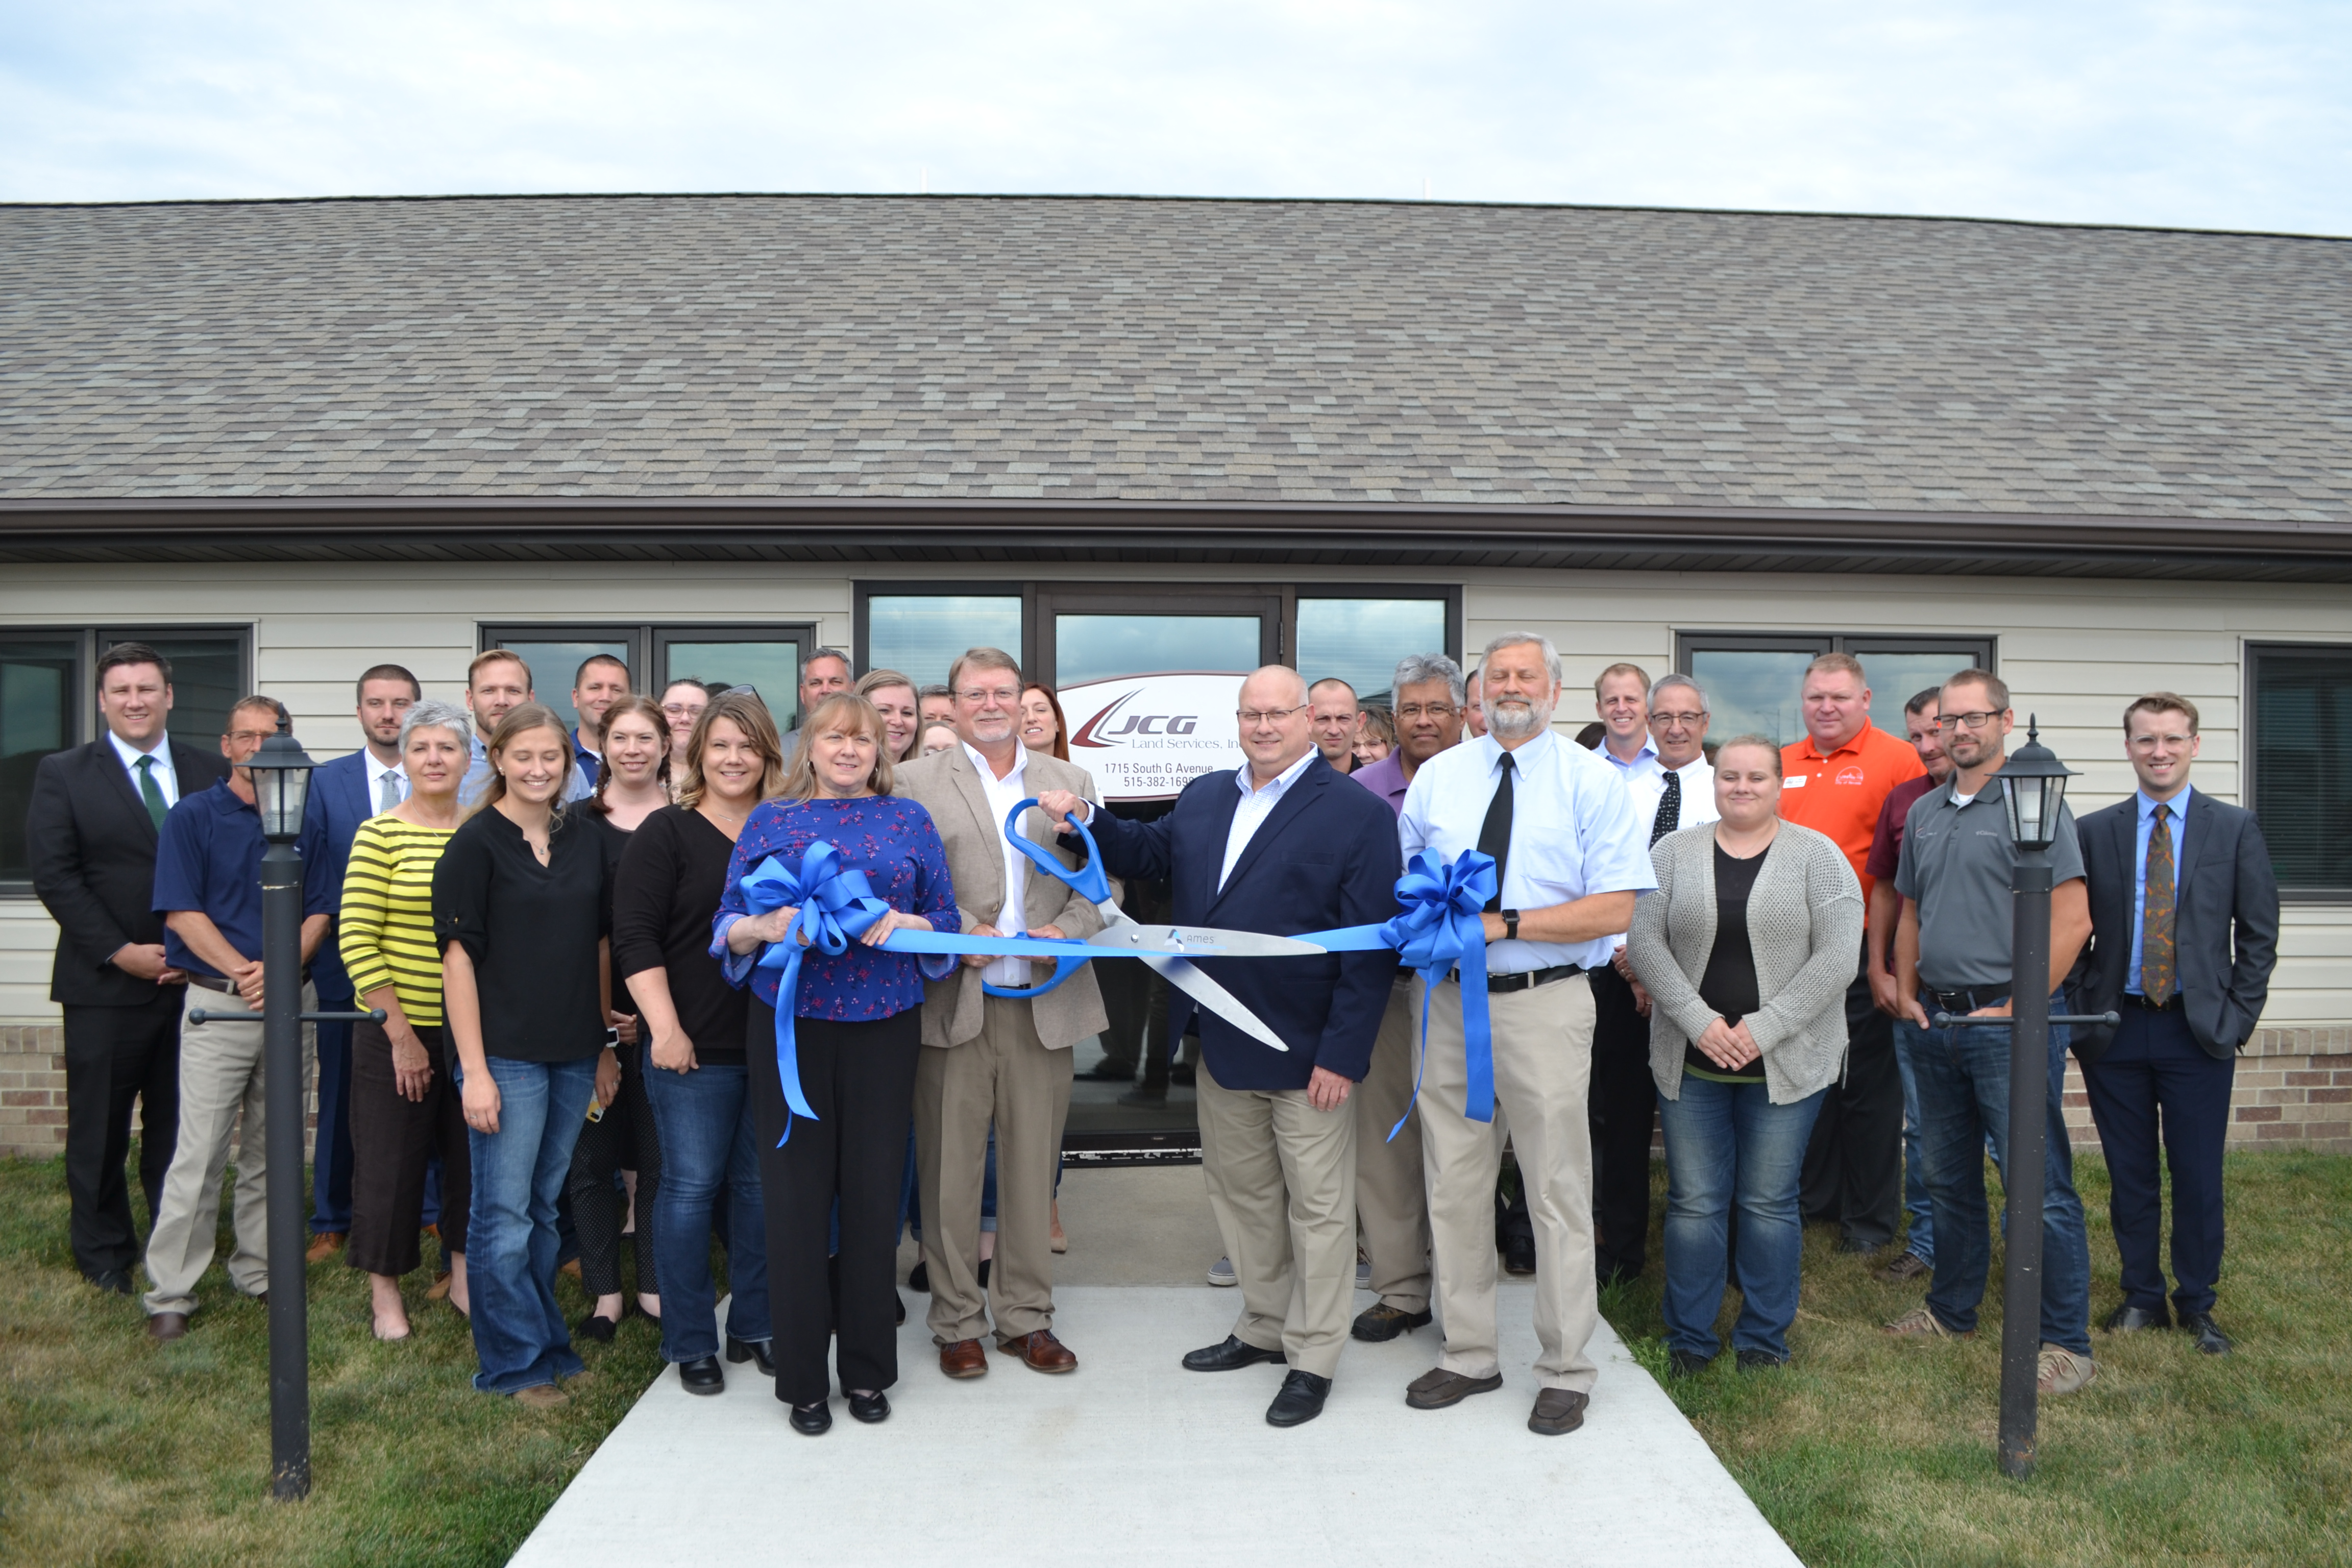 View post titled Ribbon Cutting Feature: JCG Land Services